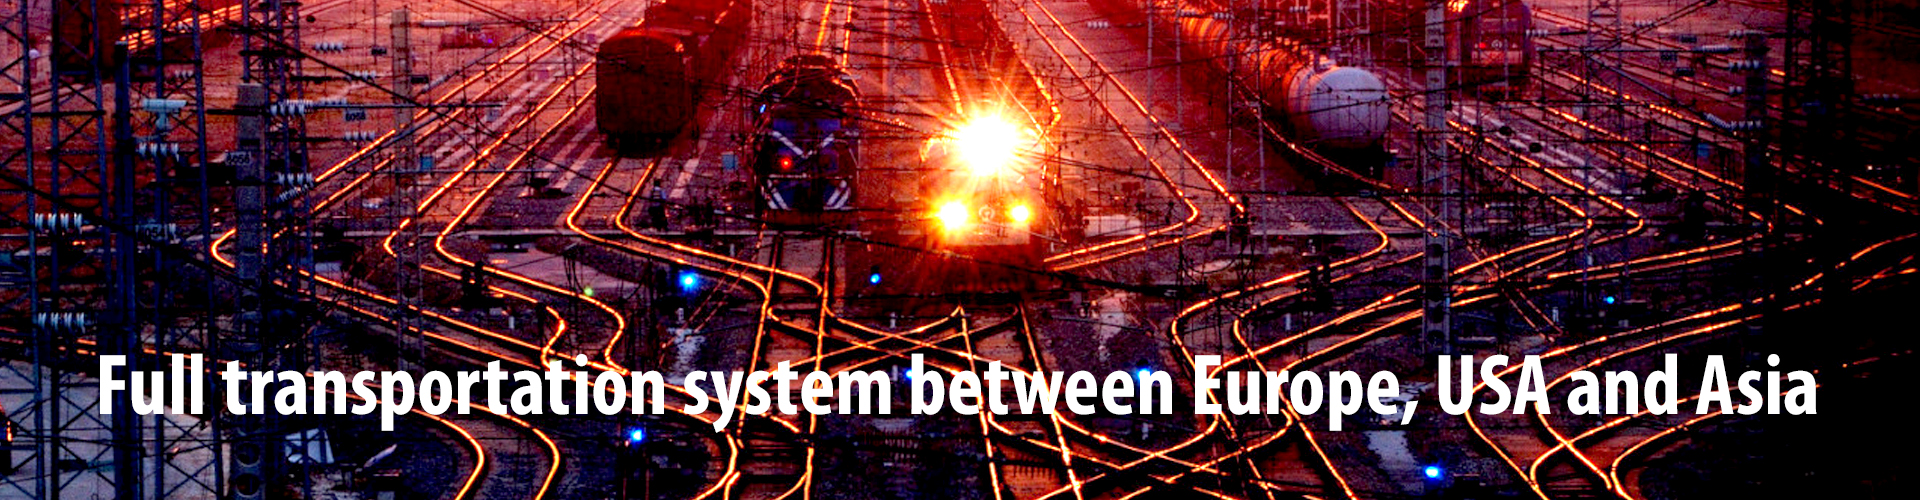 Full transportation system between Europe, USA and Asia - Master Mind Logistic